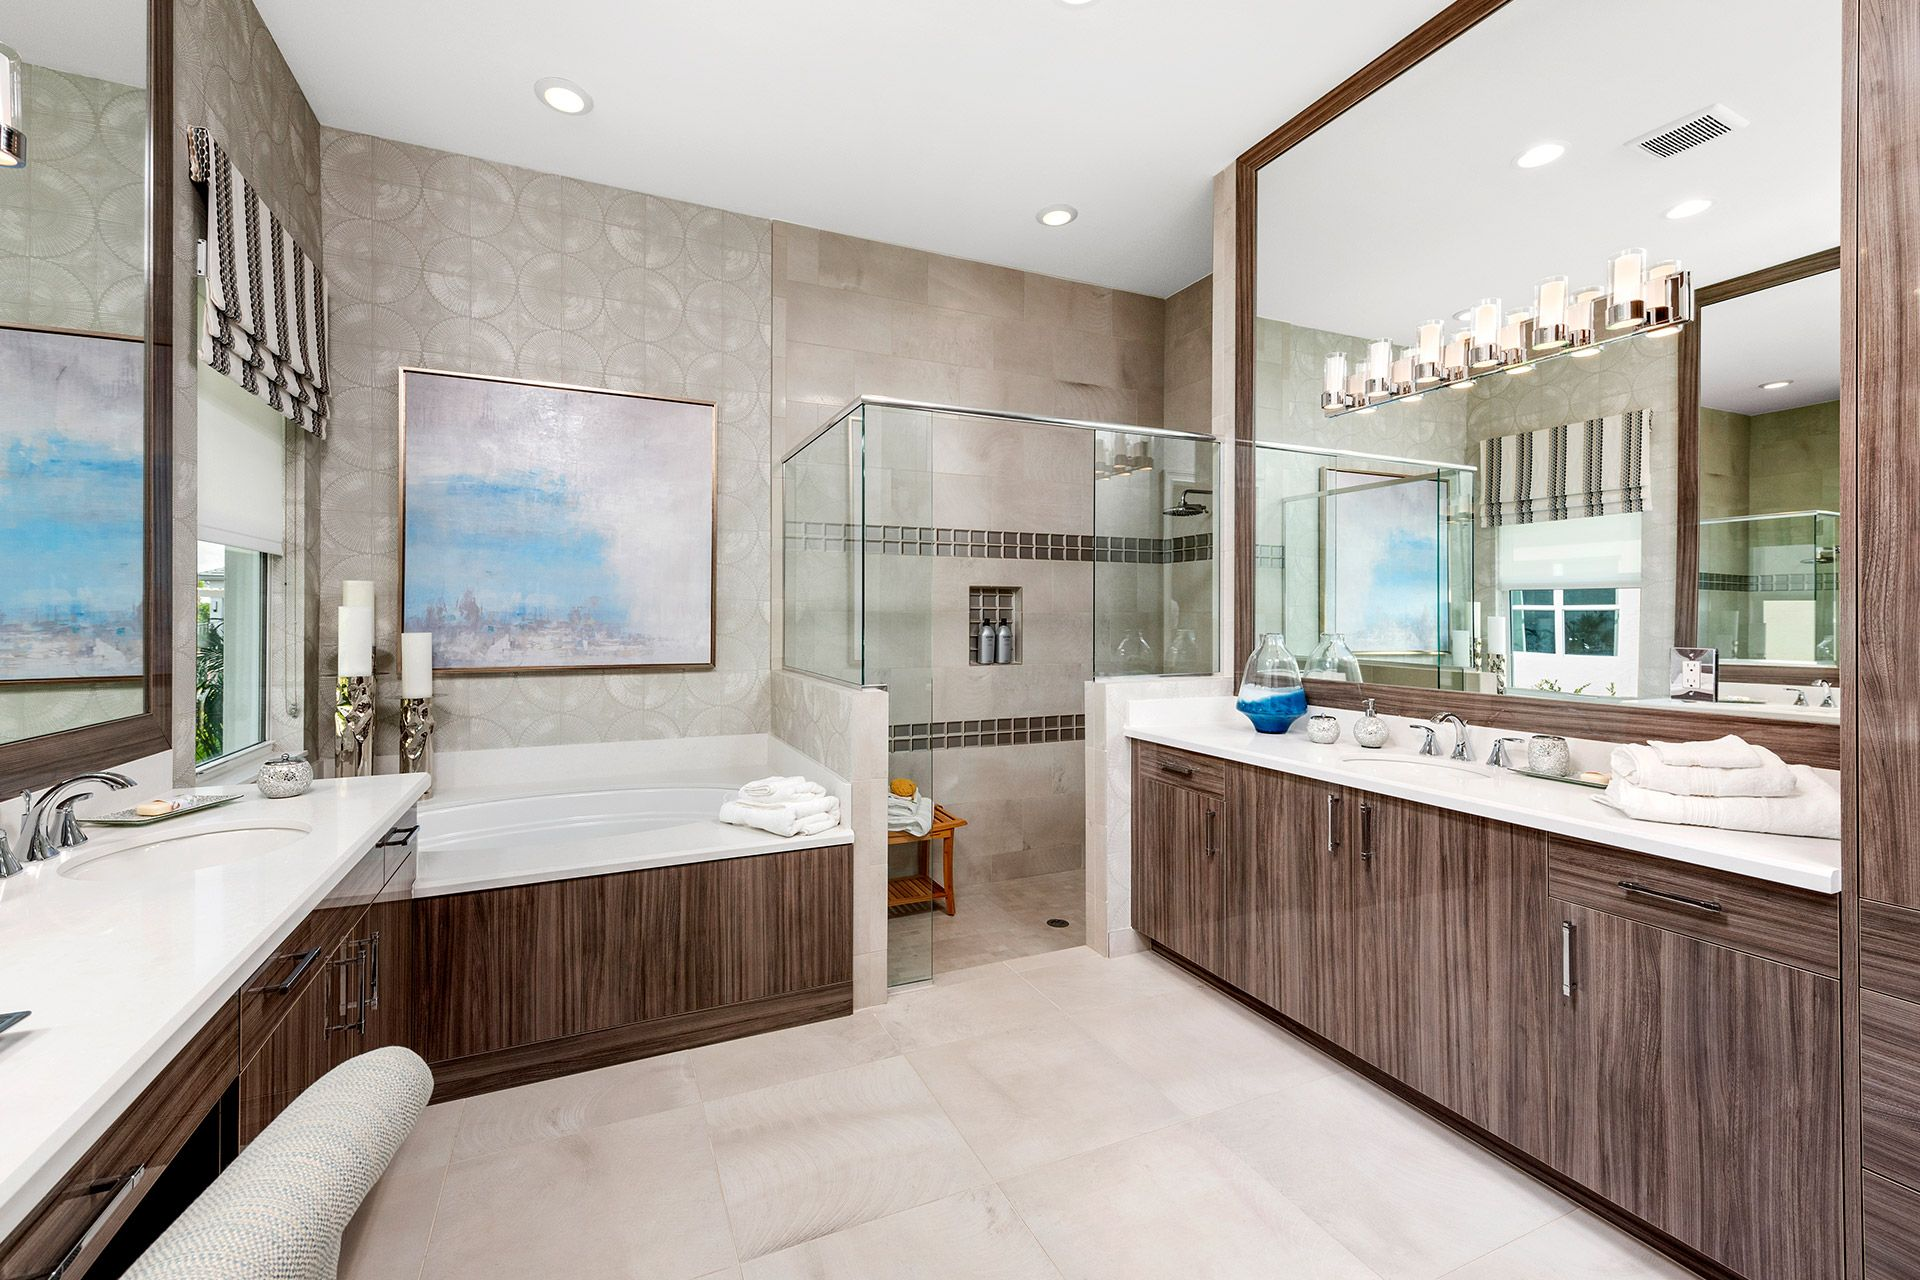 Bathroom featured in the Carlyle By GL Homes in Palm Beach County, FL